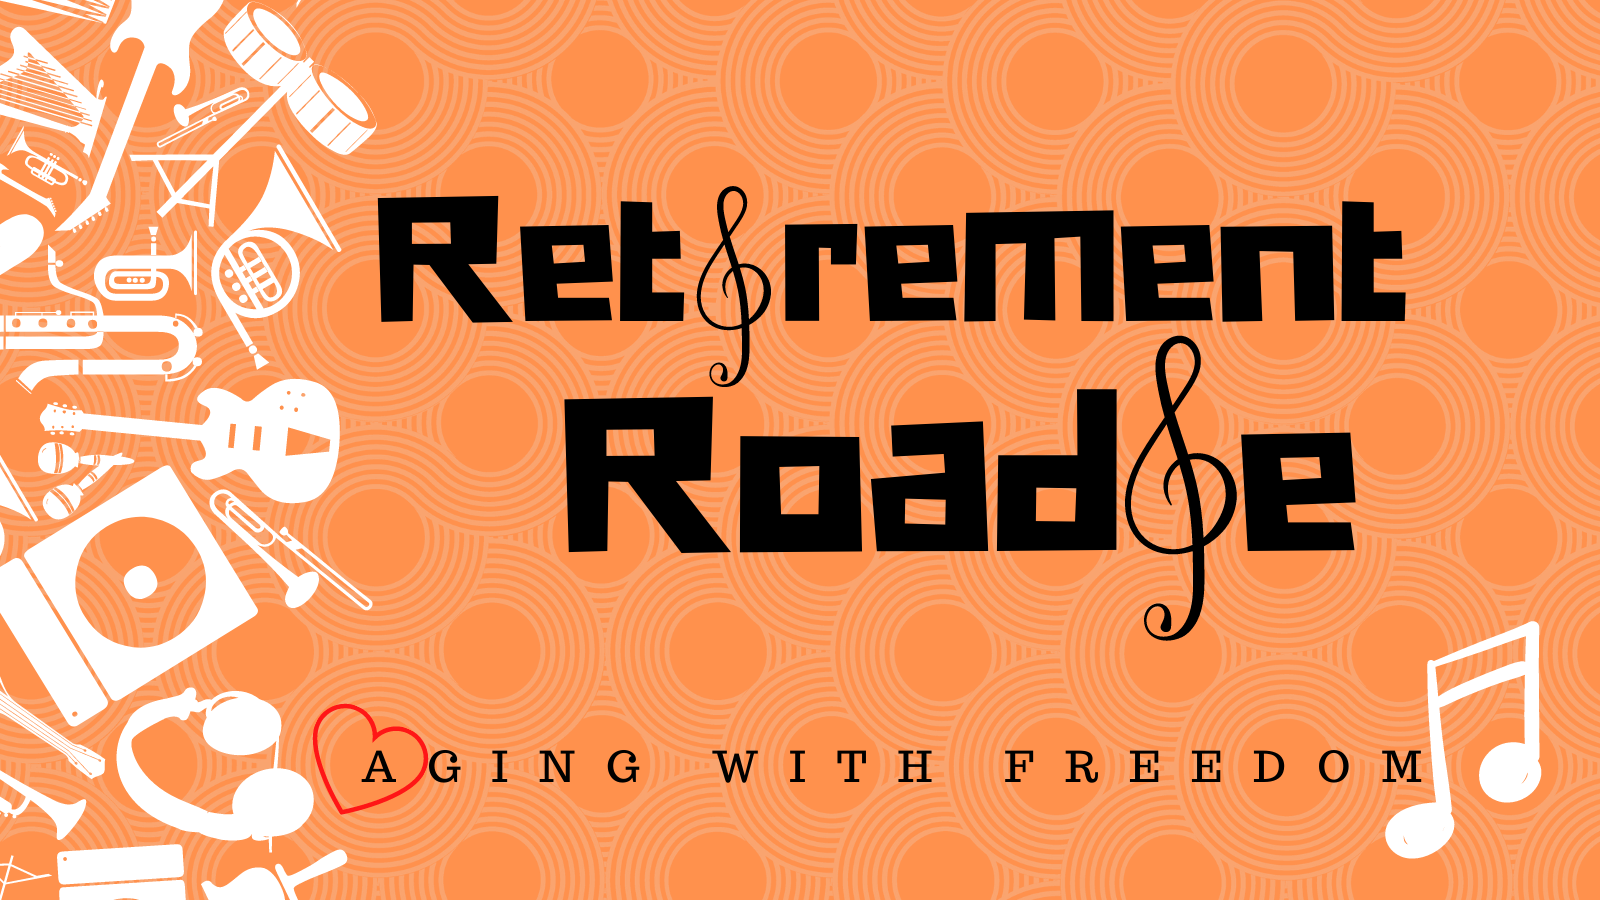 Retirement Roadie with musical notes